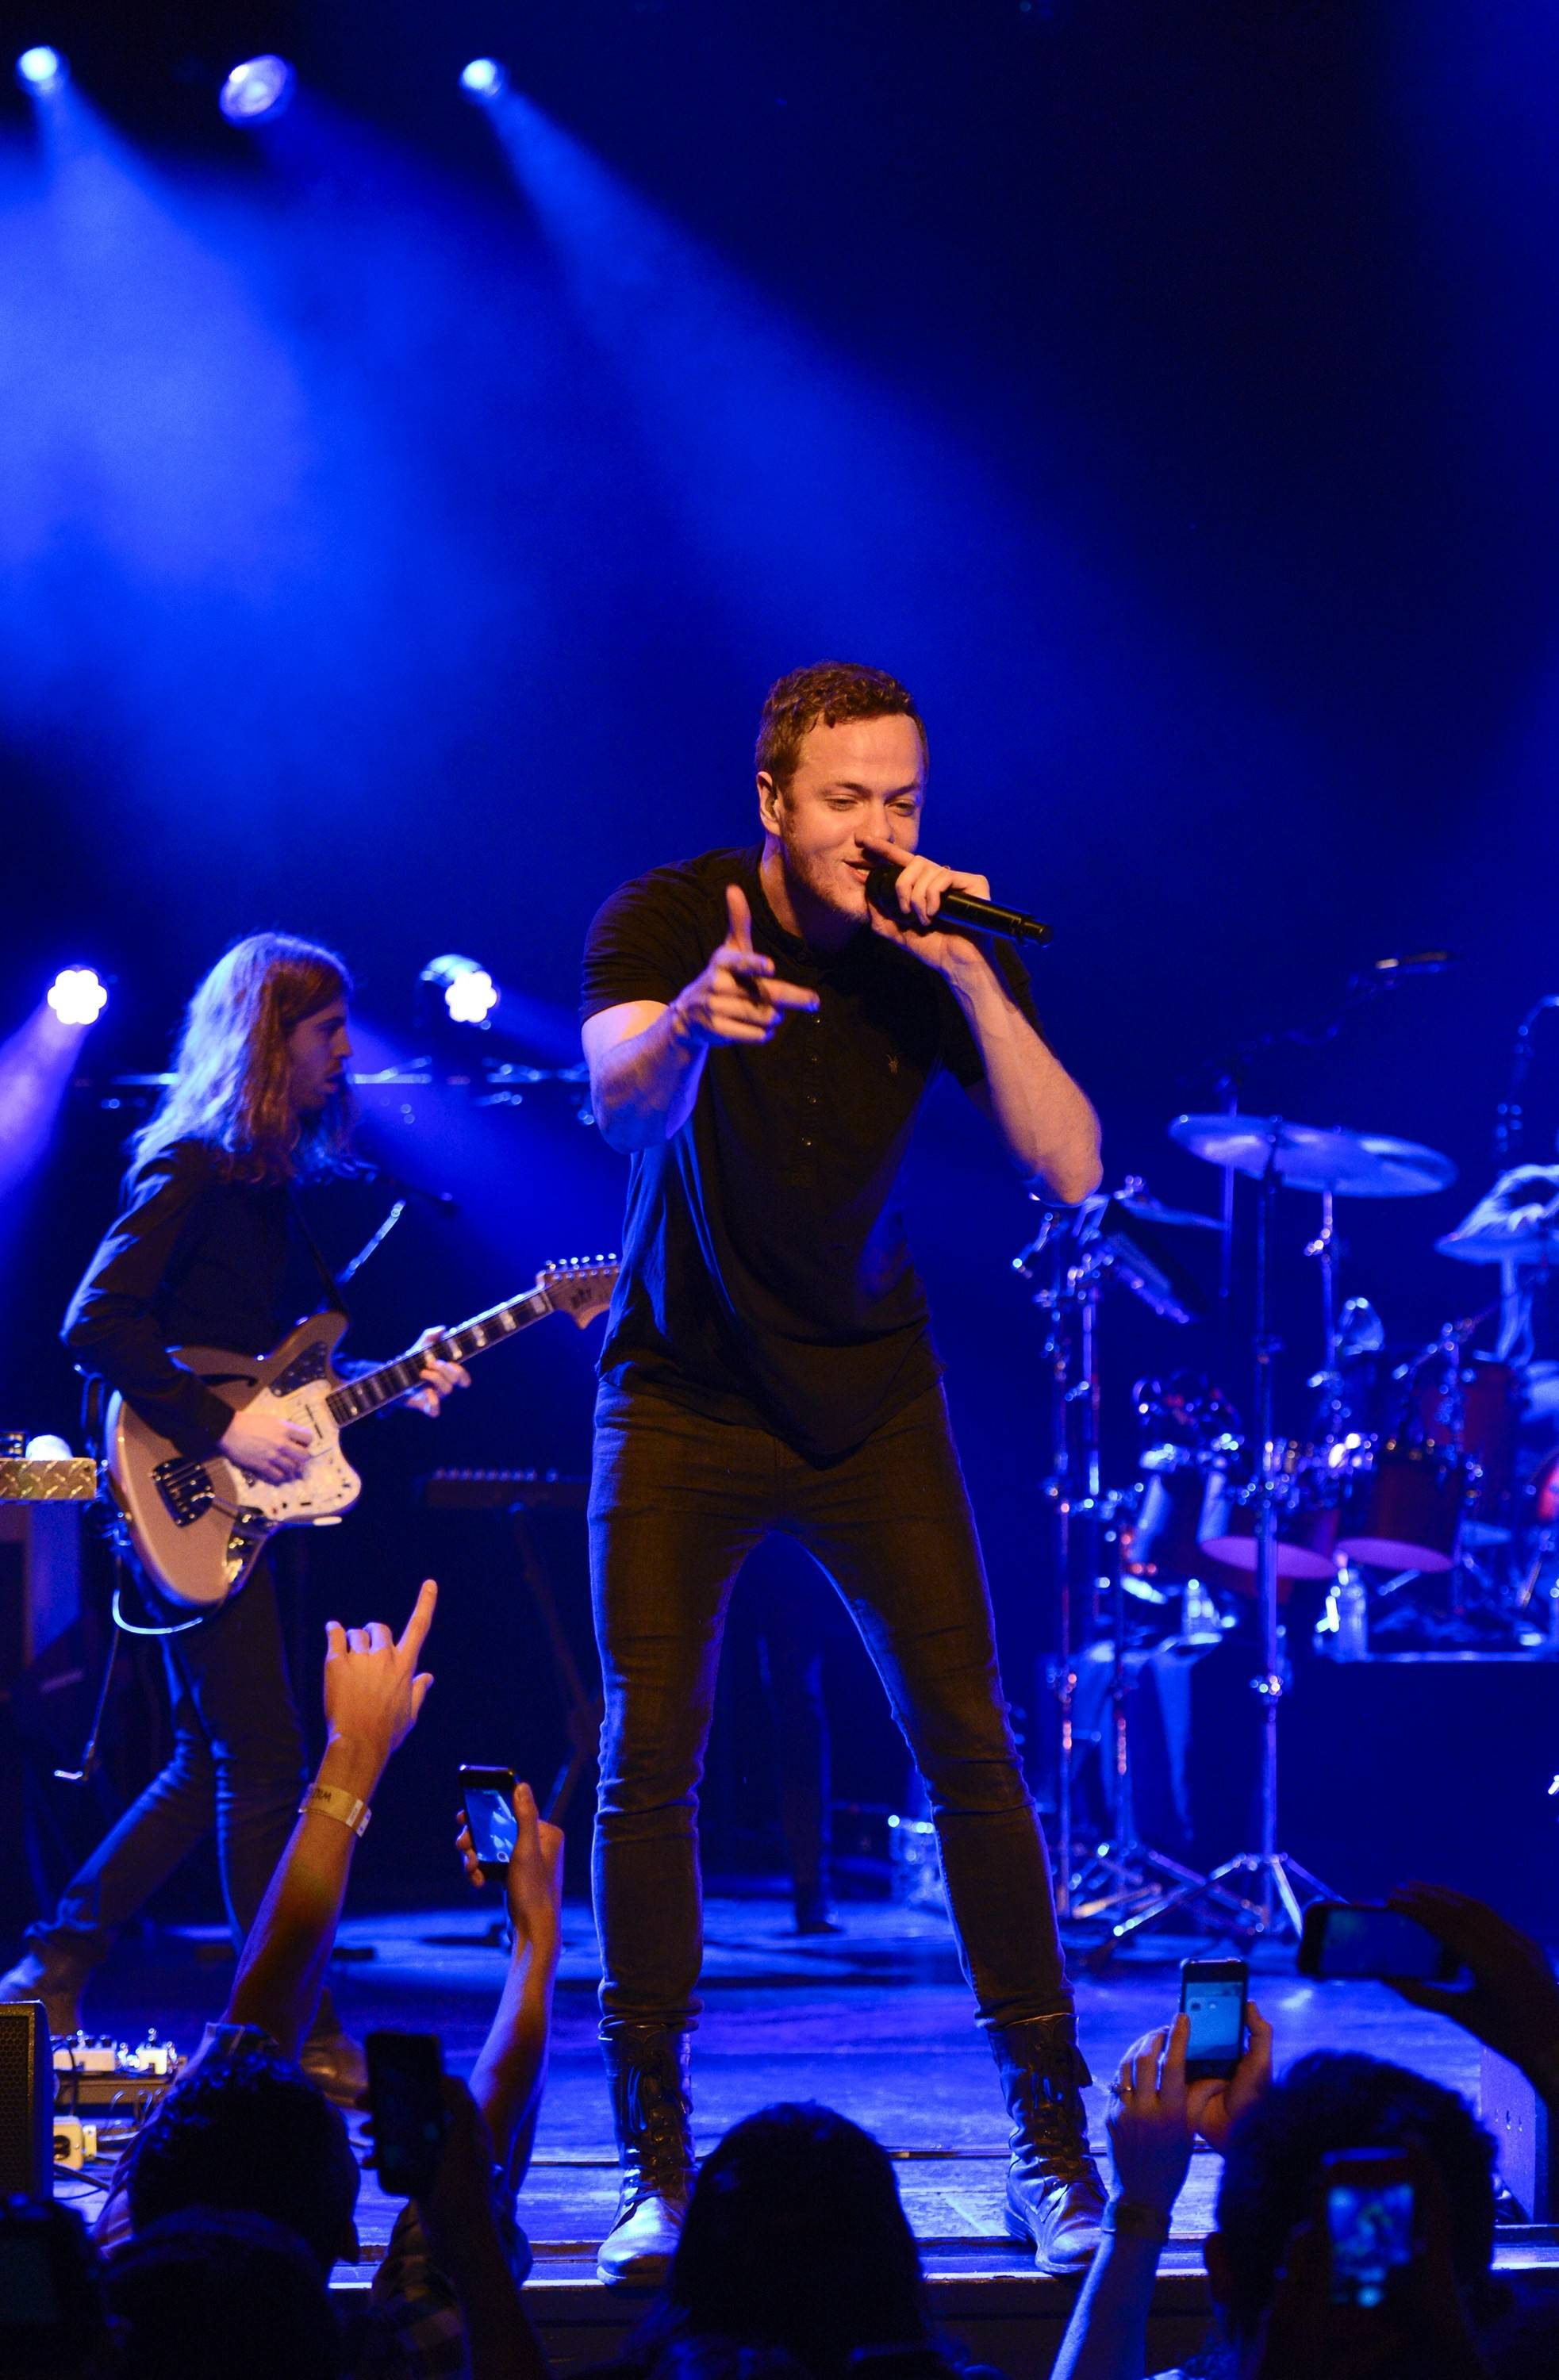 Dan Reynolds and Imagine Dragons will play the Allstate Arena in Rosemont on March 13.